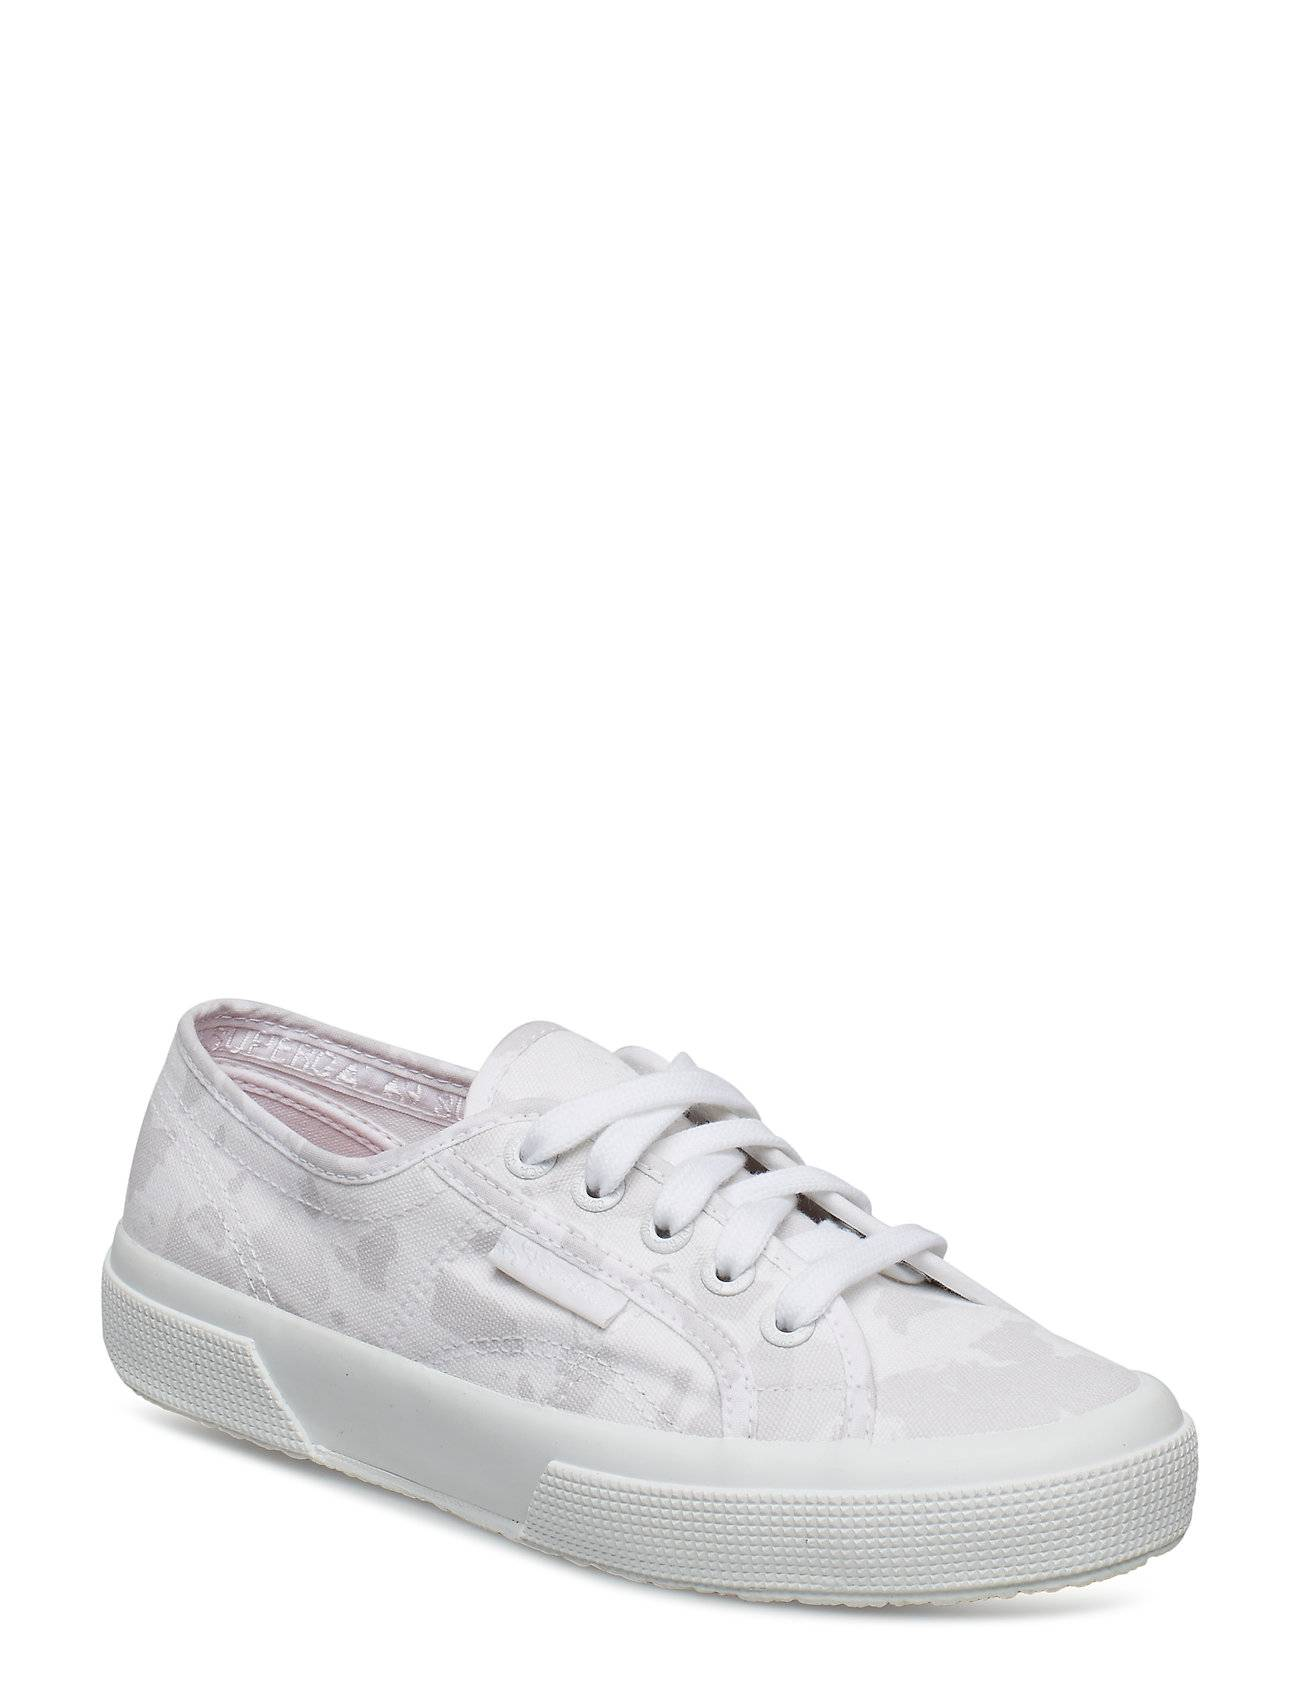 Superga 2750 Fancotu Matalavartiset Sneakerit Tennarit Valkoinen Superga